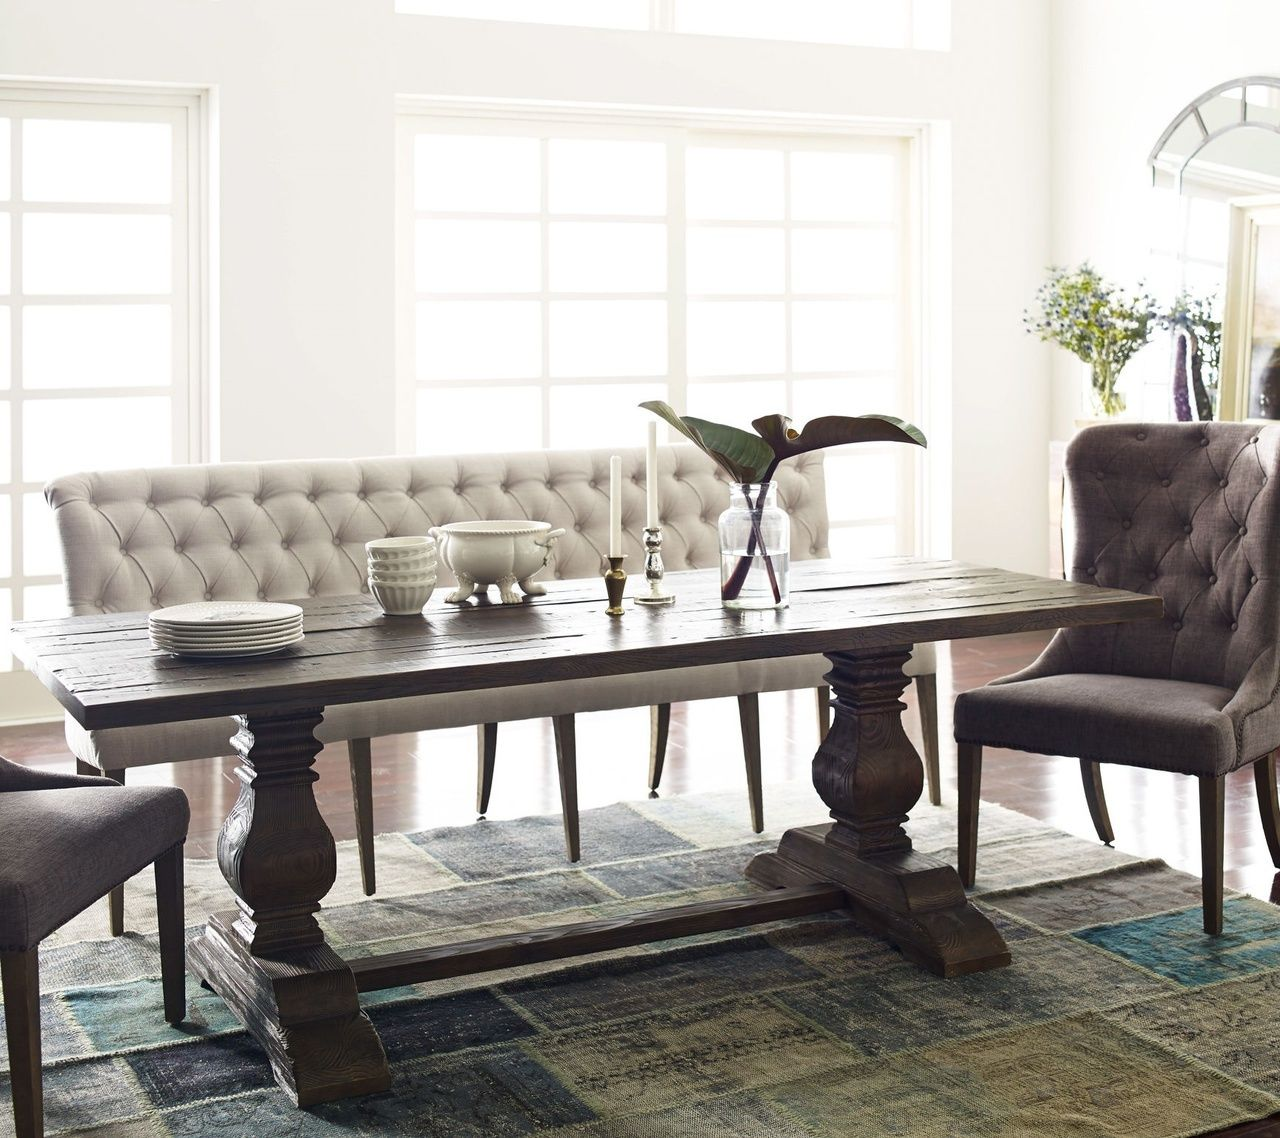 Dining Room Inexpensive Dining Room Table With Bench And: French Tufted Upholstered Dining Bench Banquette In 2019